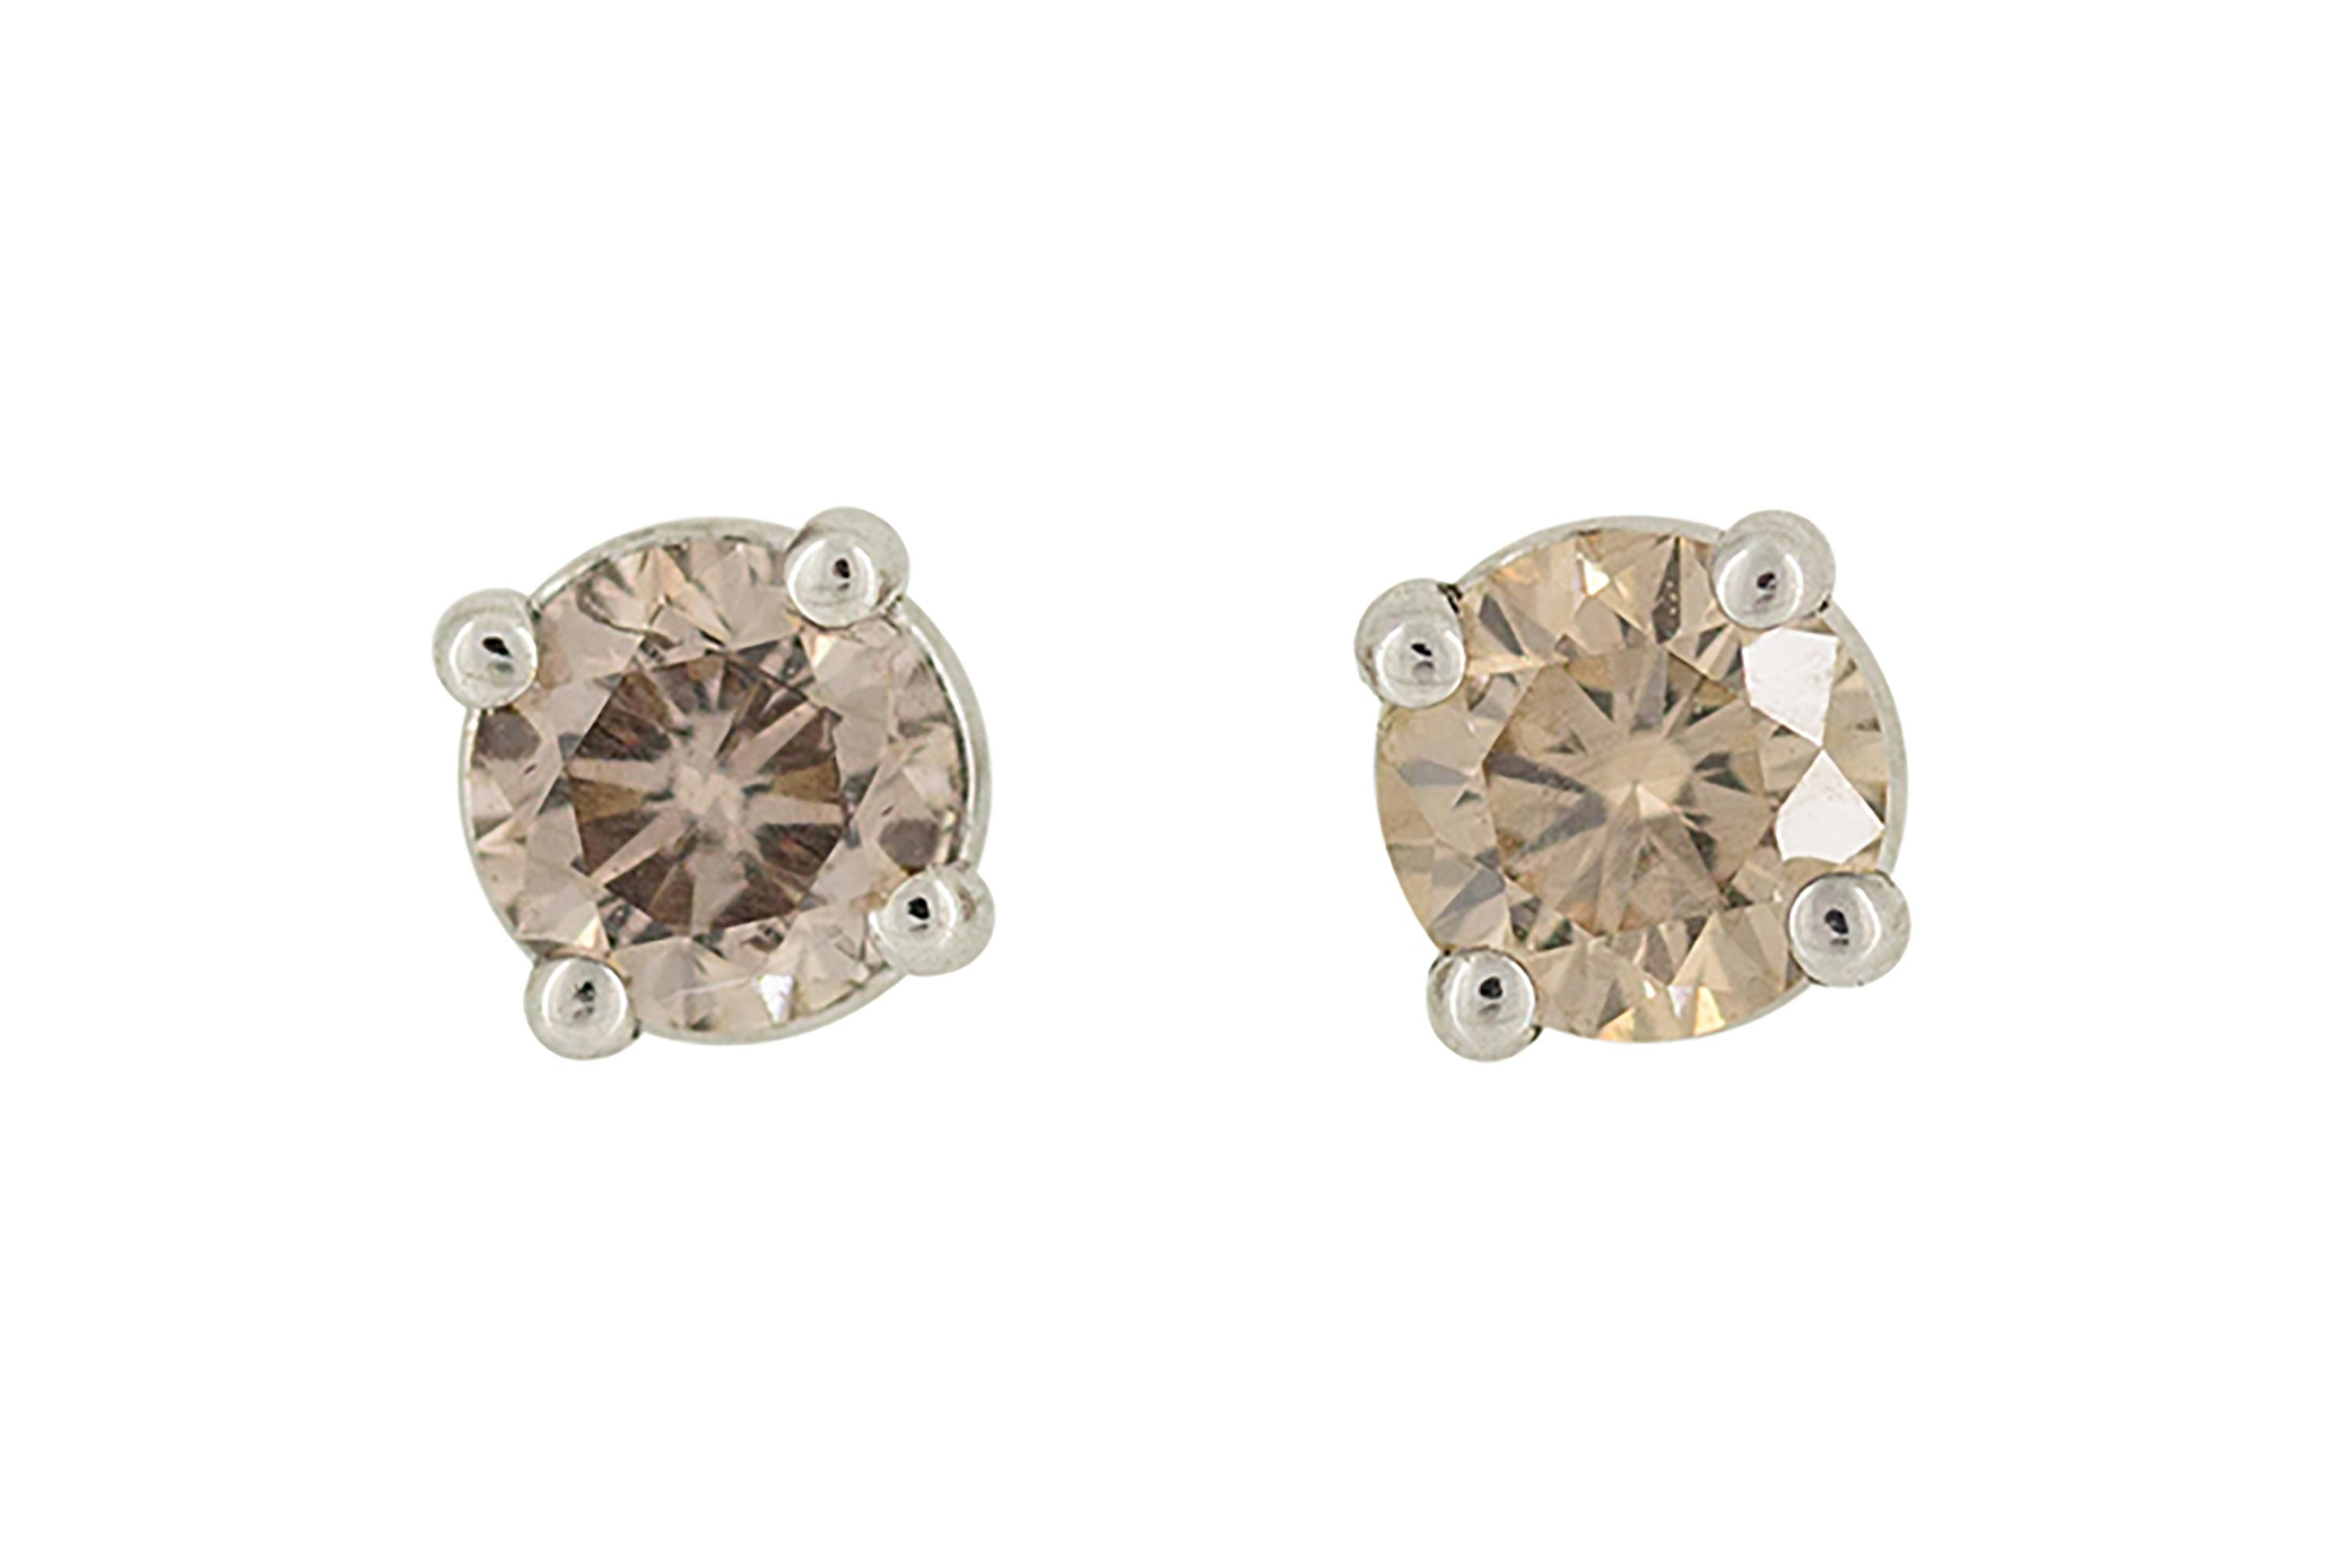 9ct White Gold and Champagne Diamond Studs